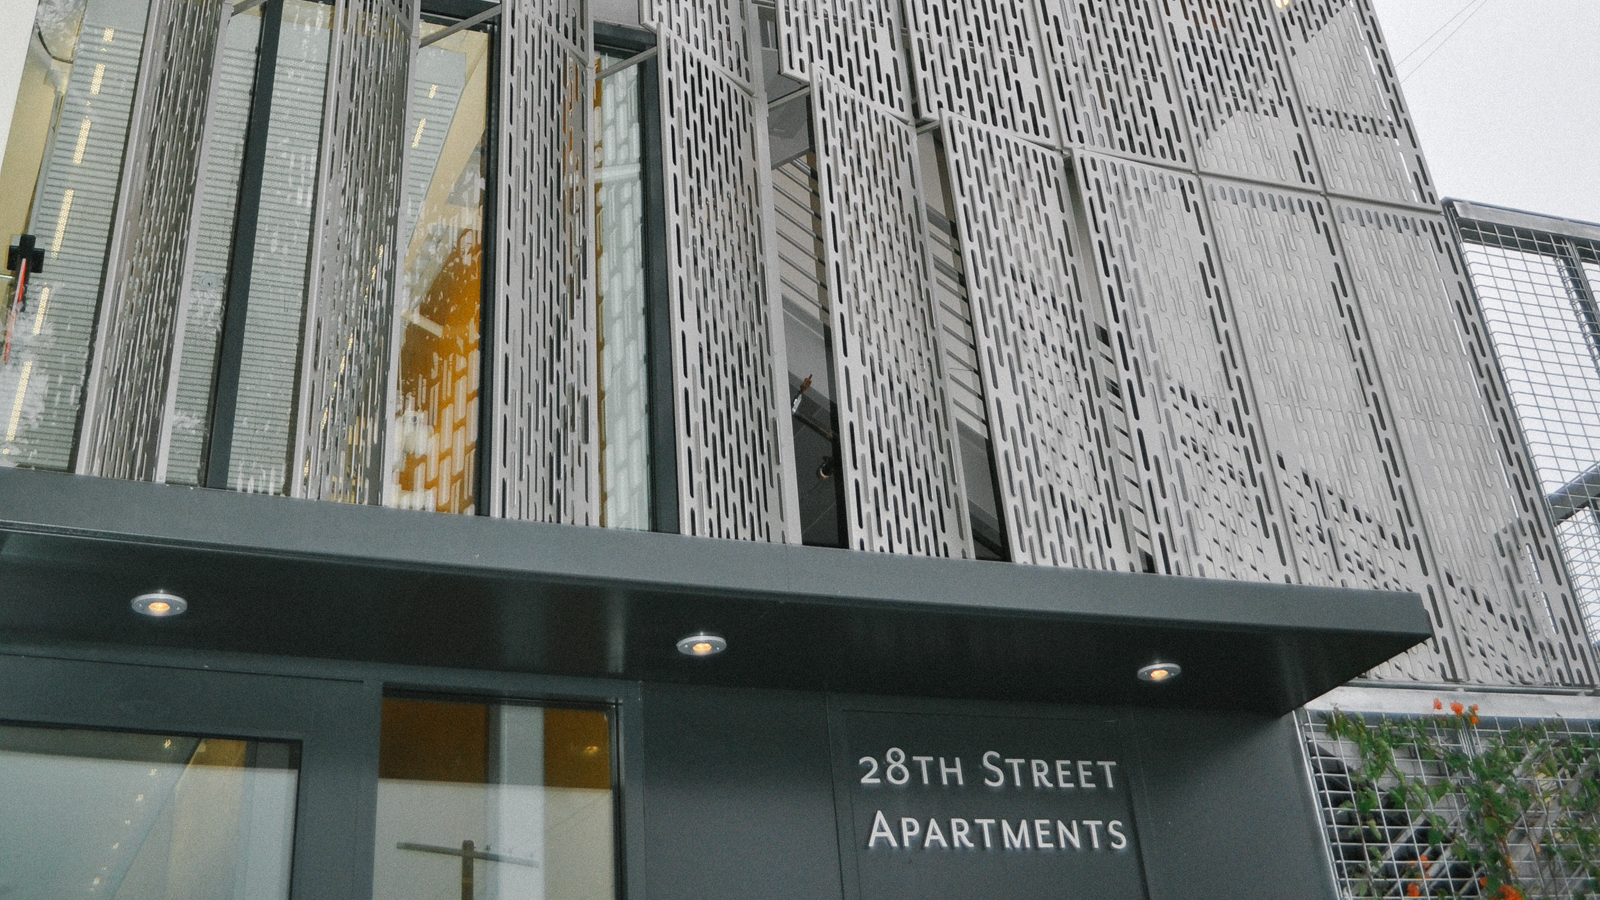 28th Street Apartments